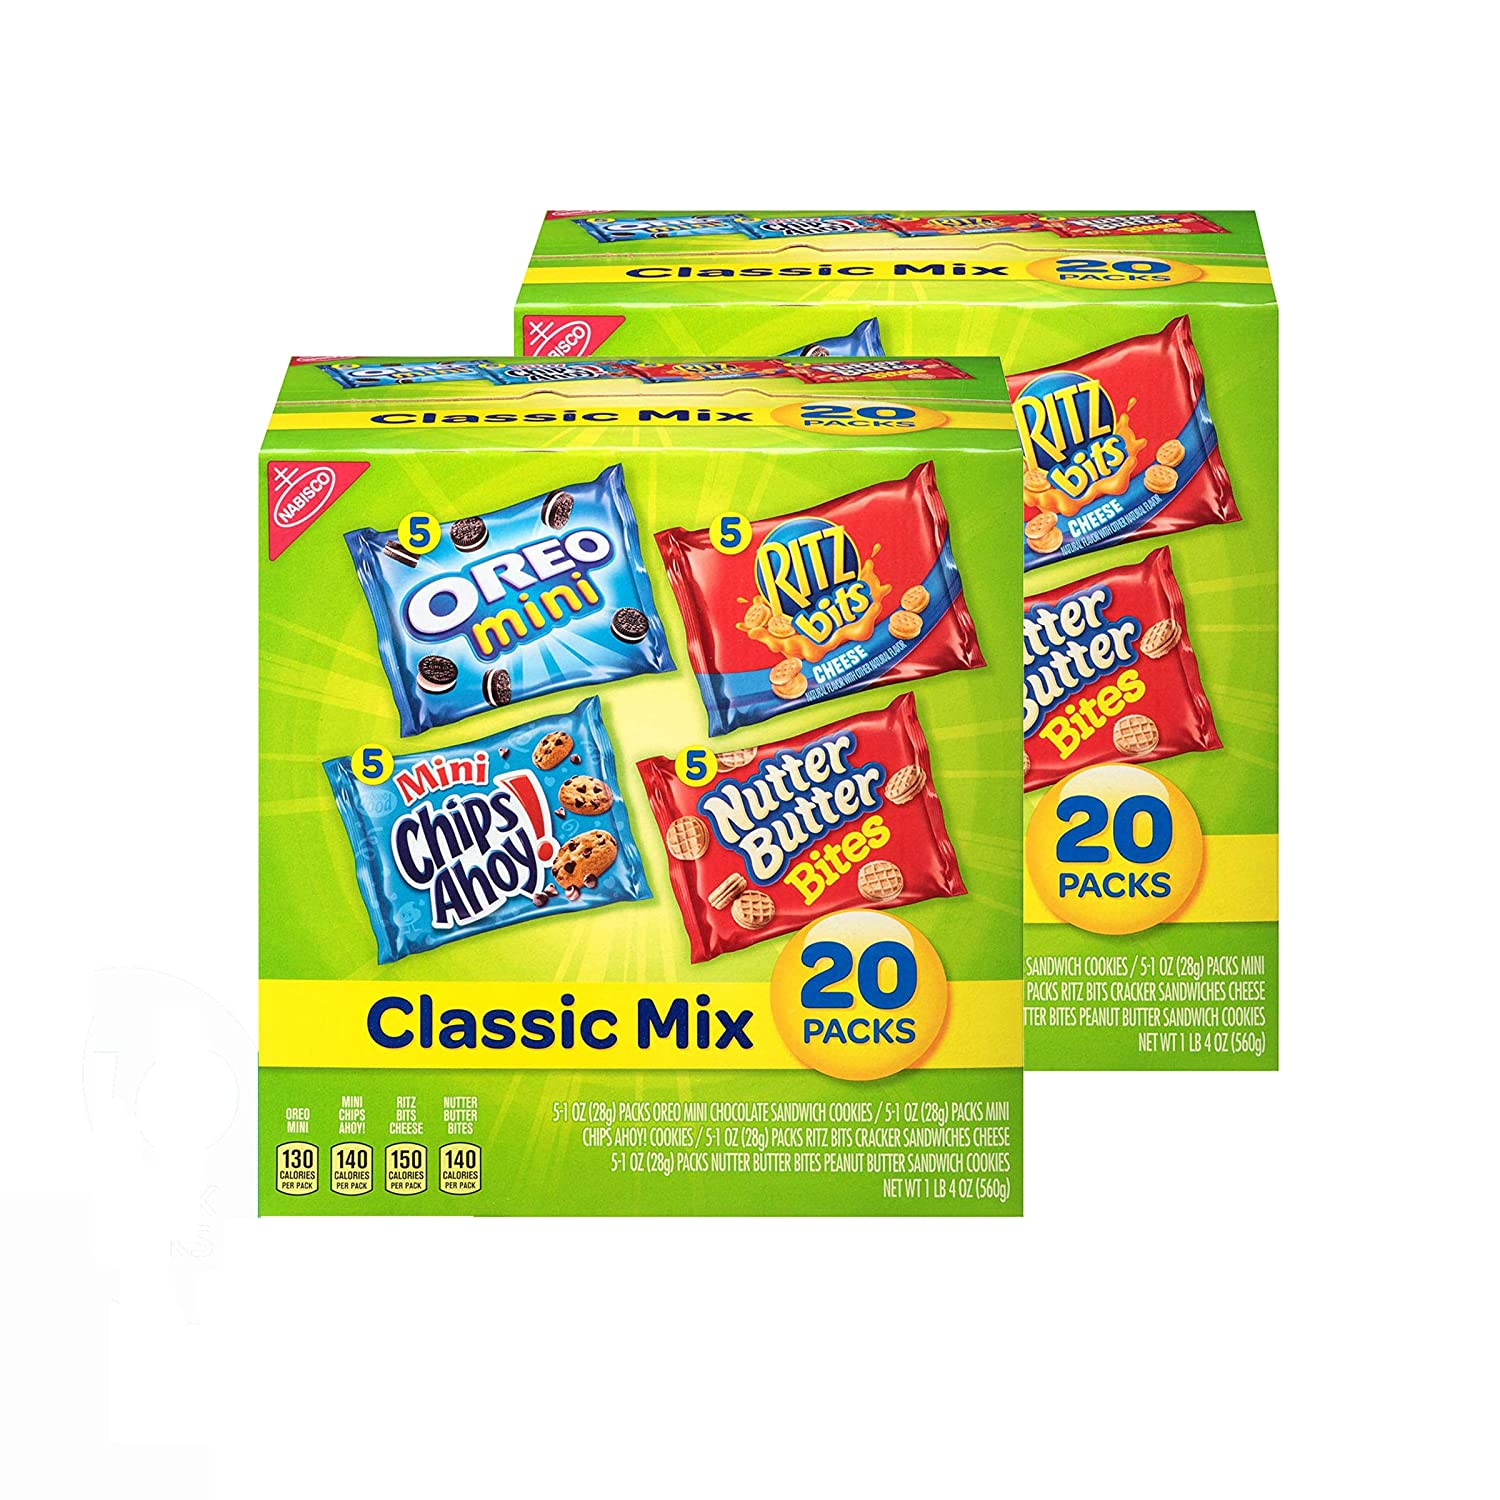 Nabisco Classic Mix Cookies & Crackers Variety Pack, OREO Mini, CHIPS AHOY! Mini, Nutter Butter Bites, RITZ Bits Cheese, Halloween Treats, 40 - 1 oz Snack Packs (2 Boxes)